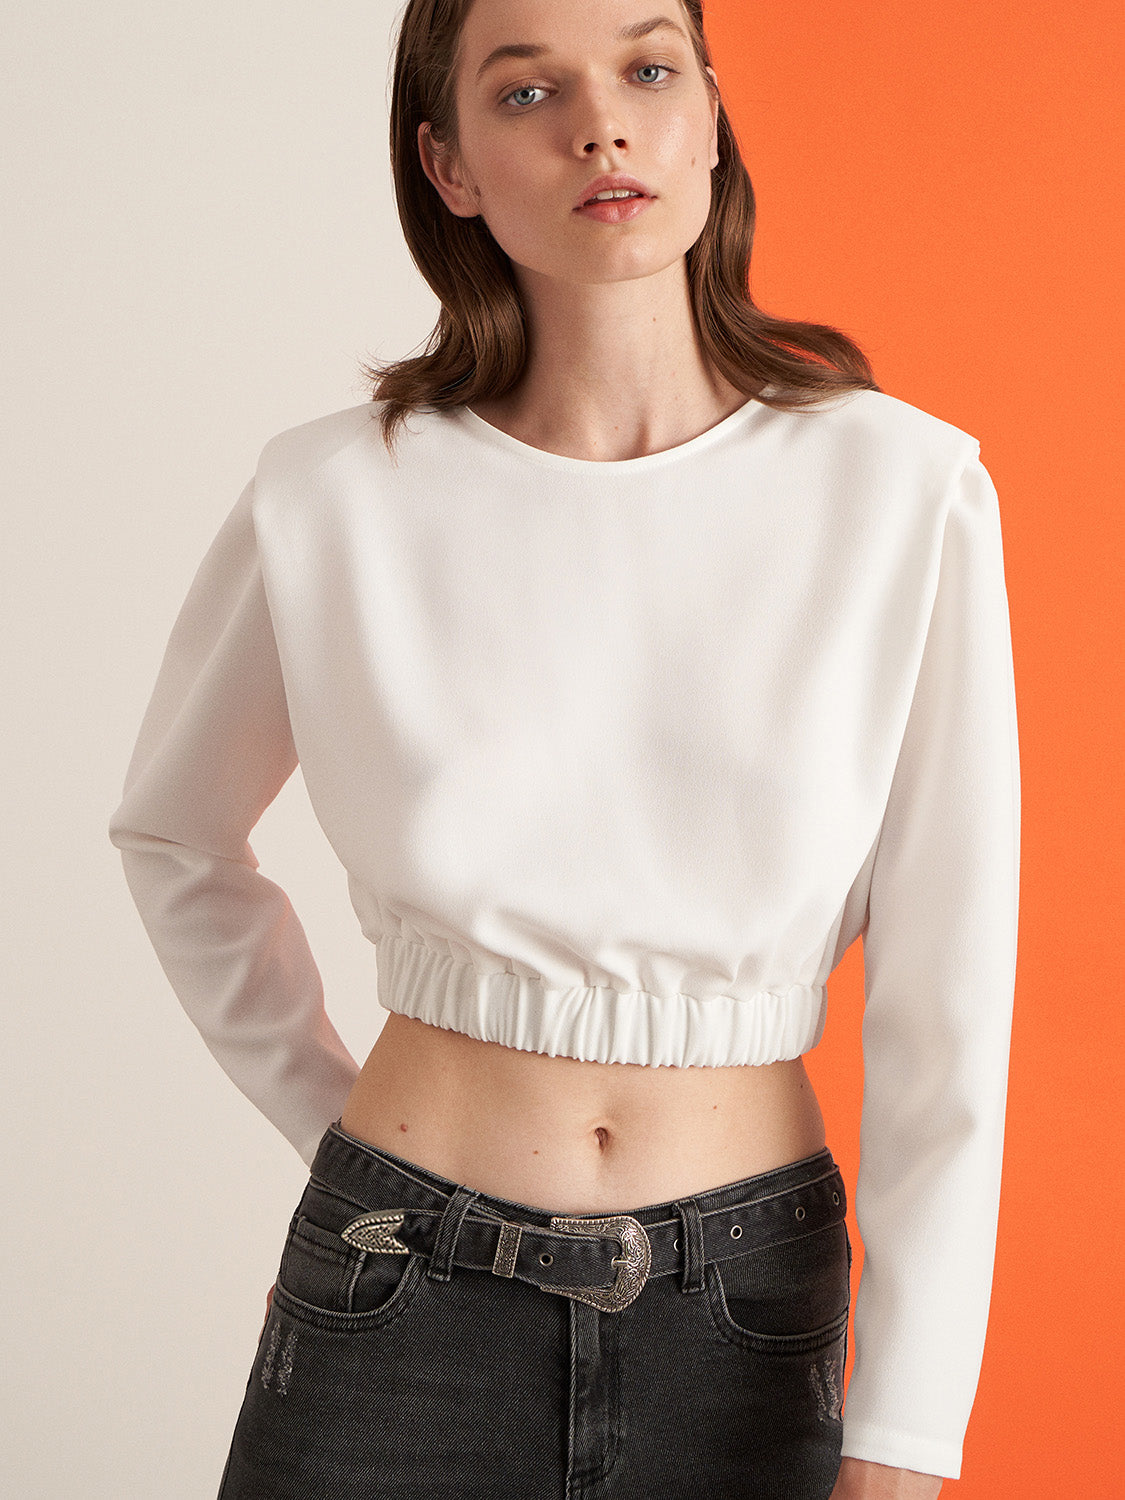 Shoulder Pad Crop Top